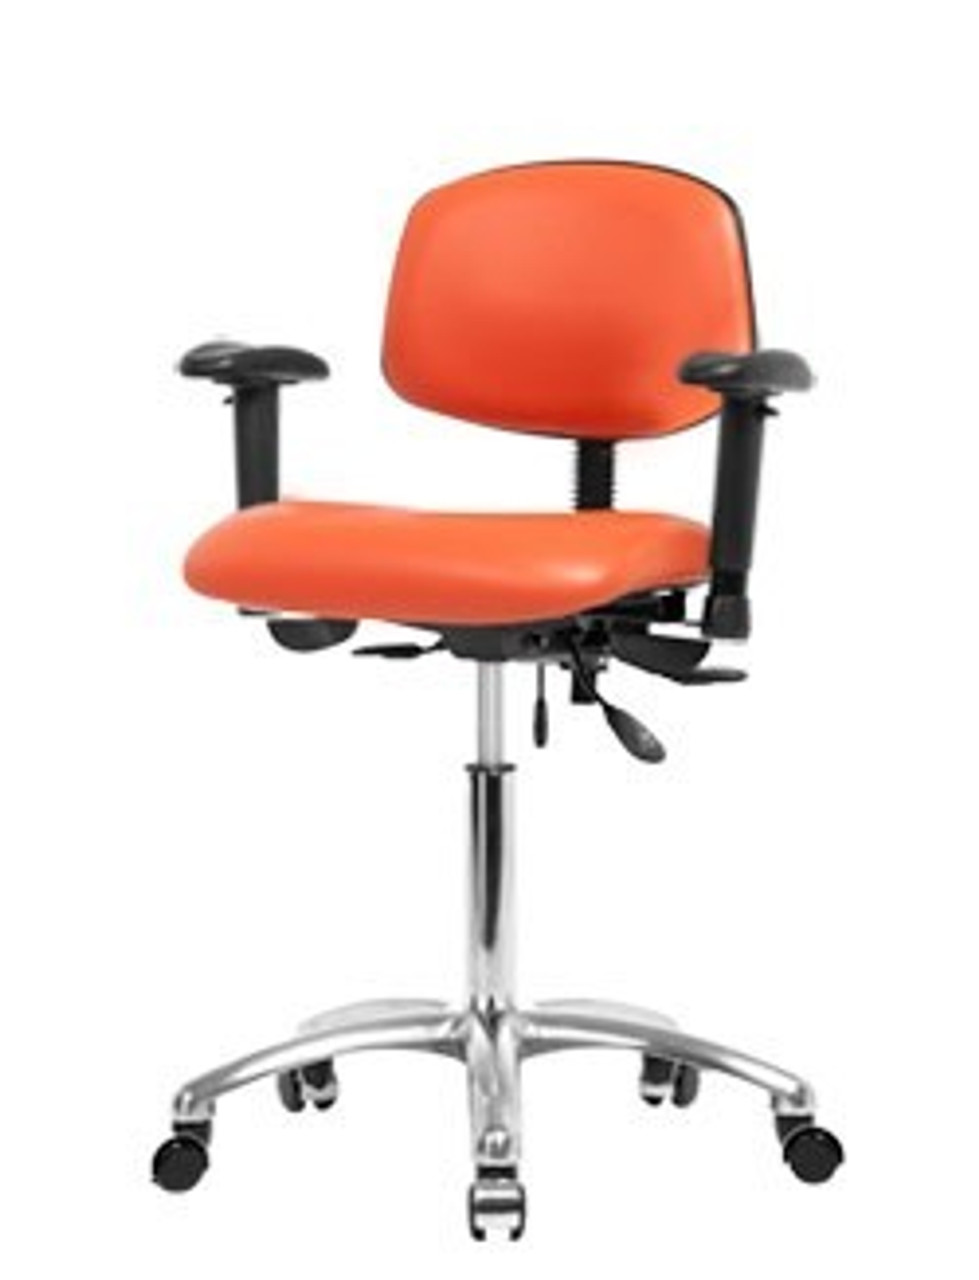 Defeat the Seat - Staying Comfortable and Healthy Depends on an Ergonomic Lab Chair